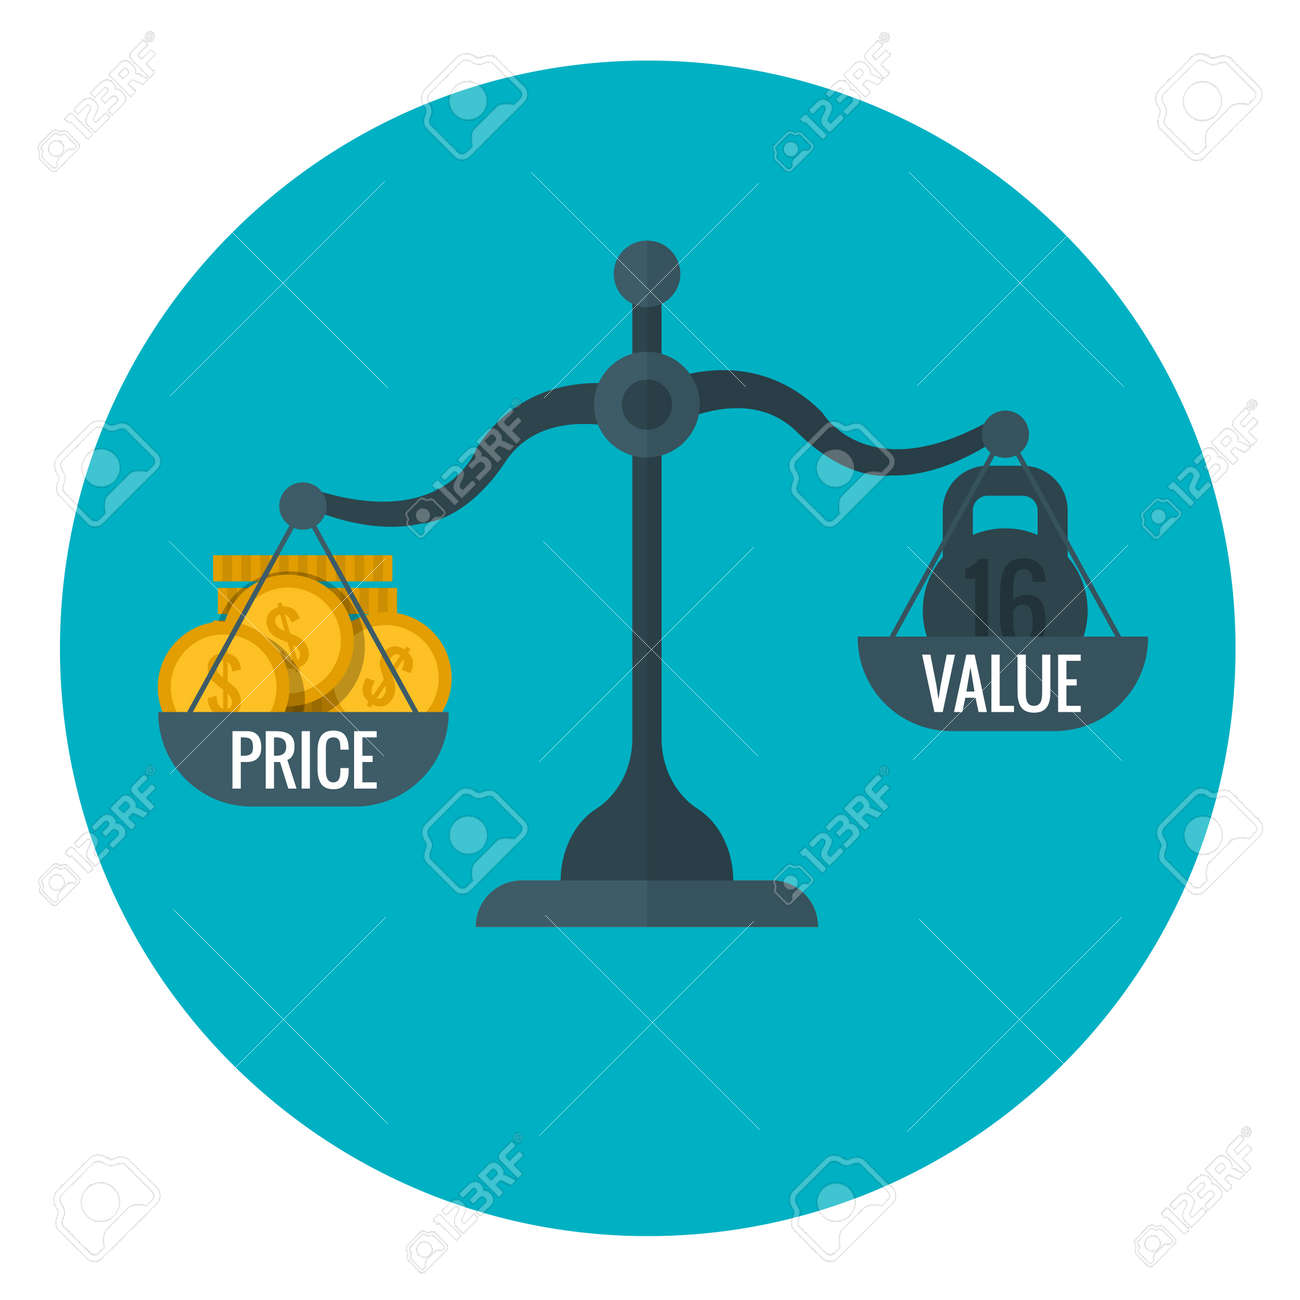 Business measurement of price and value with scale, pricing for profit vector concept. Compare price and value on scale, illustration of finance scale measurement - 165951937